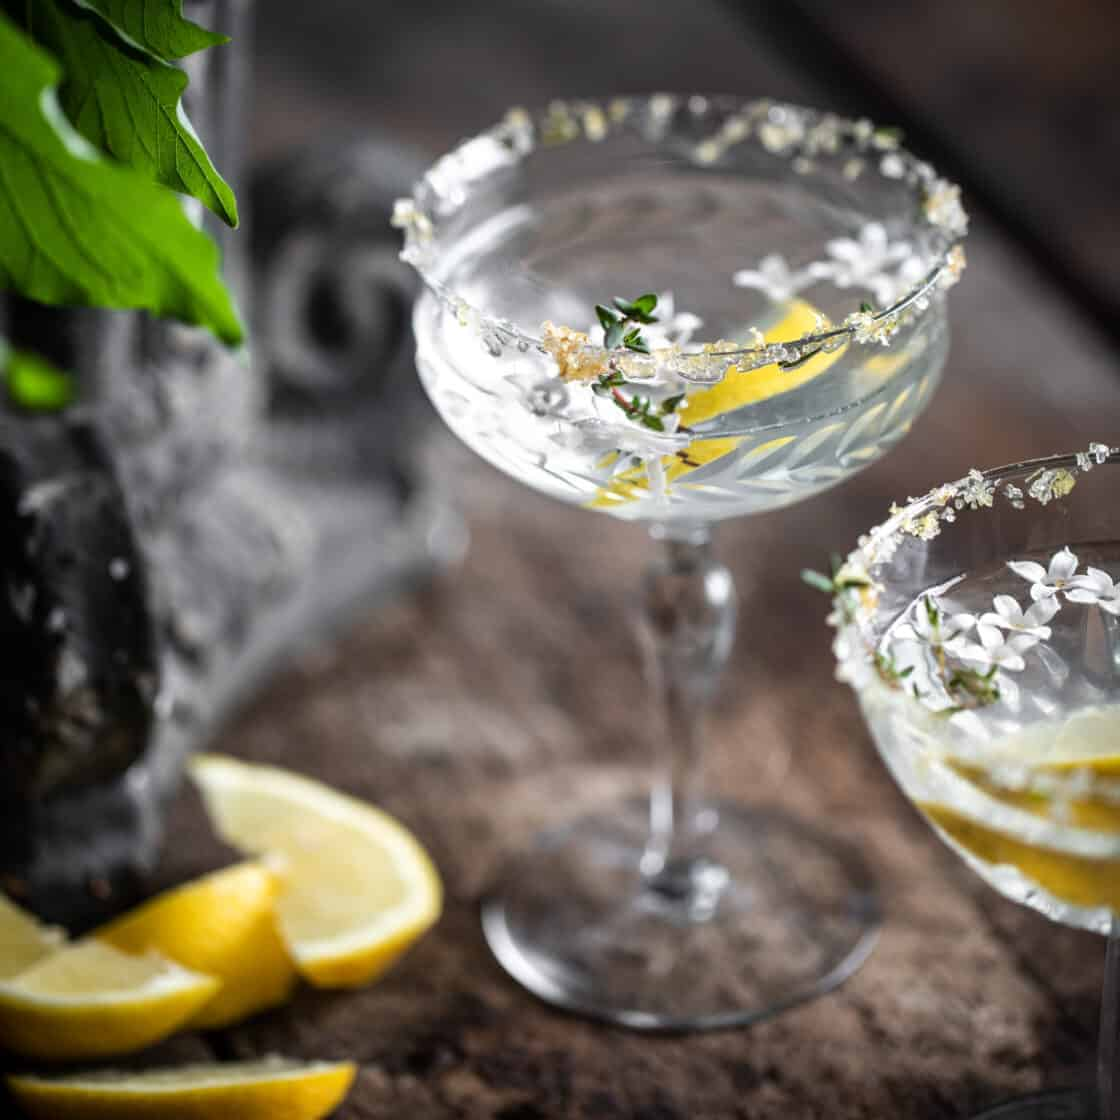 Lemon drop martini in rustic setting with thyme lemon zest and lilac on the rim of the glass 3/4 view of garnished drink photography